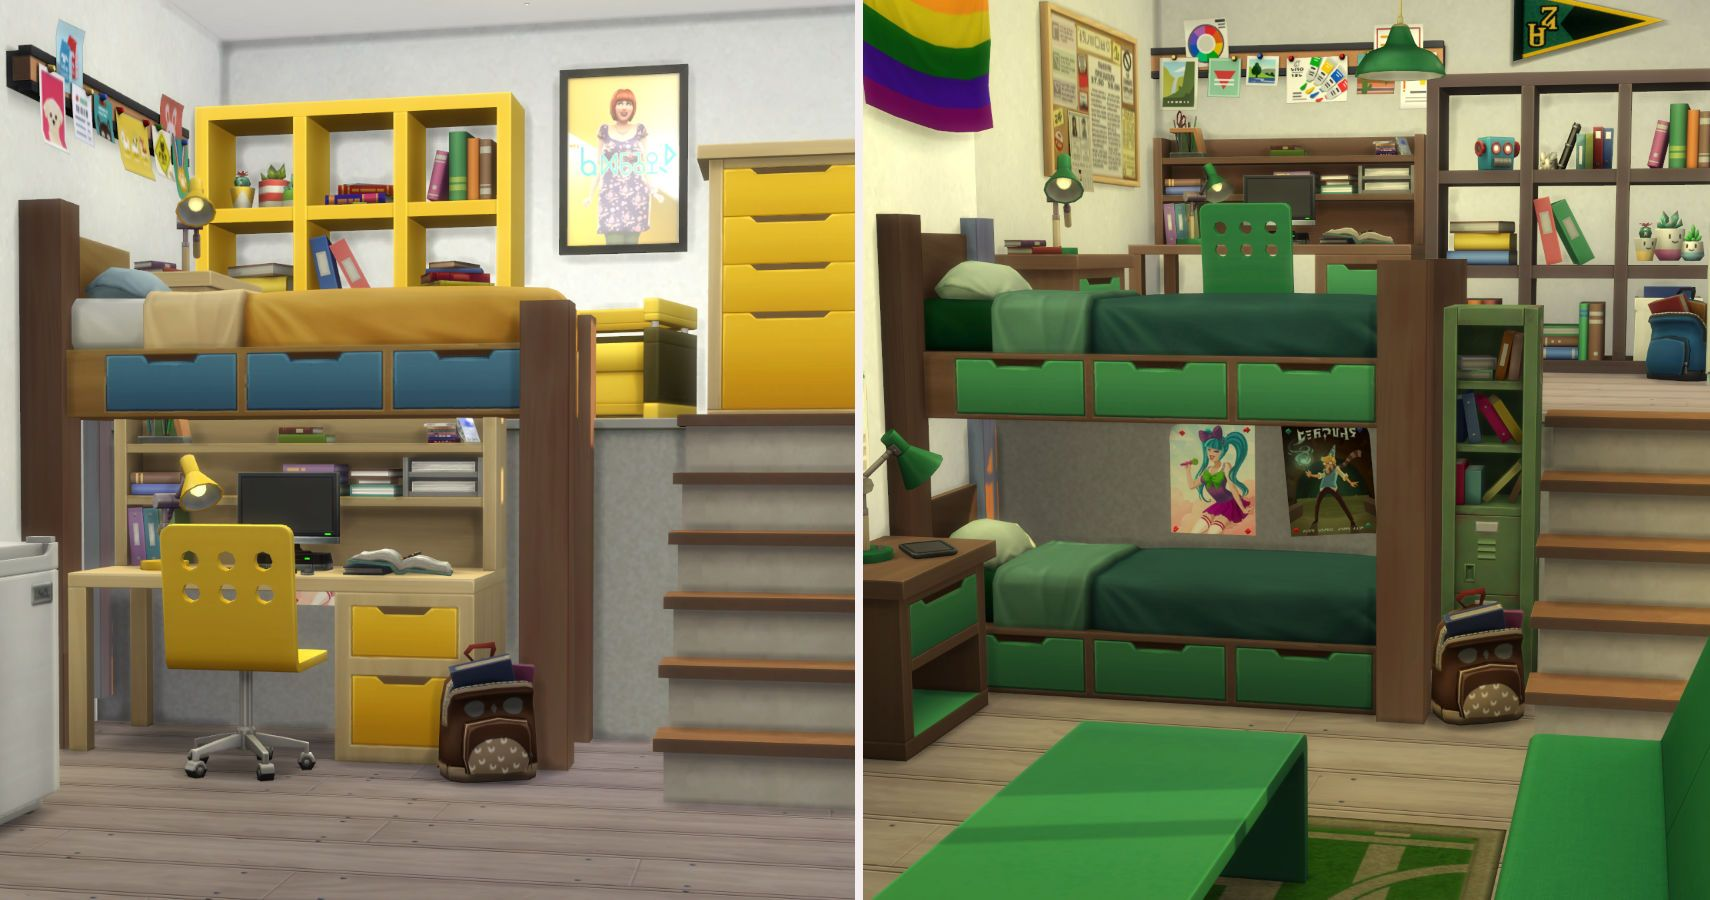 The Sims 4 A Step By Step Guide To Creating Cc Free Bunk Beds